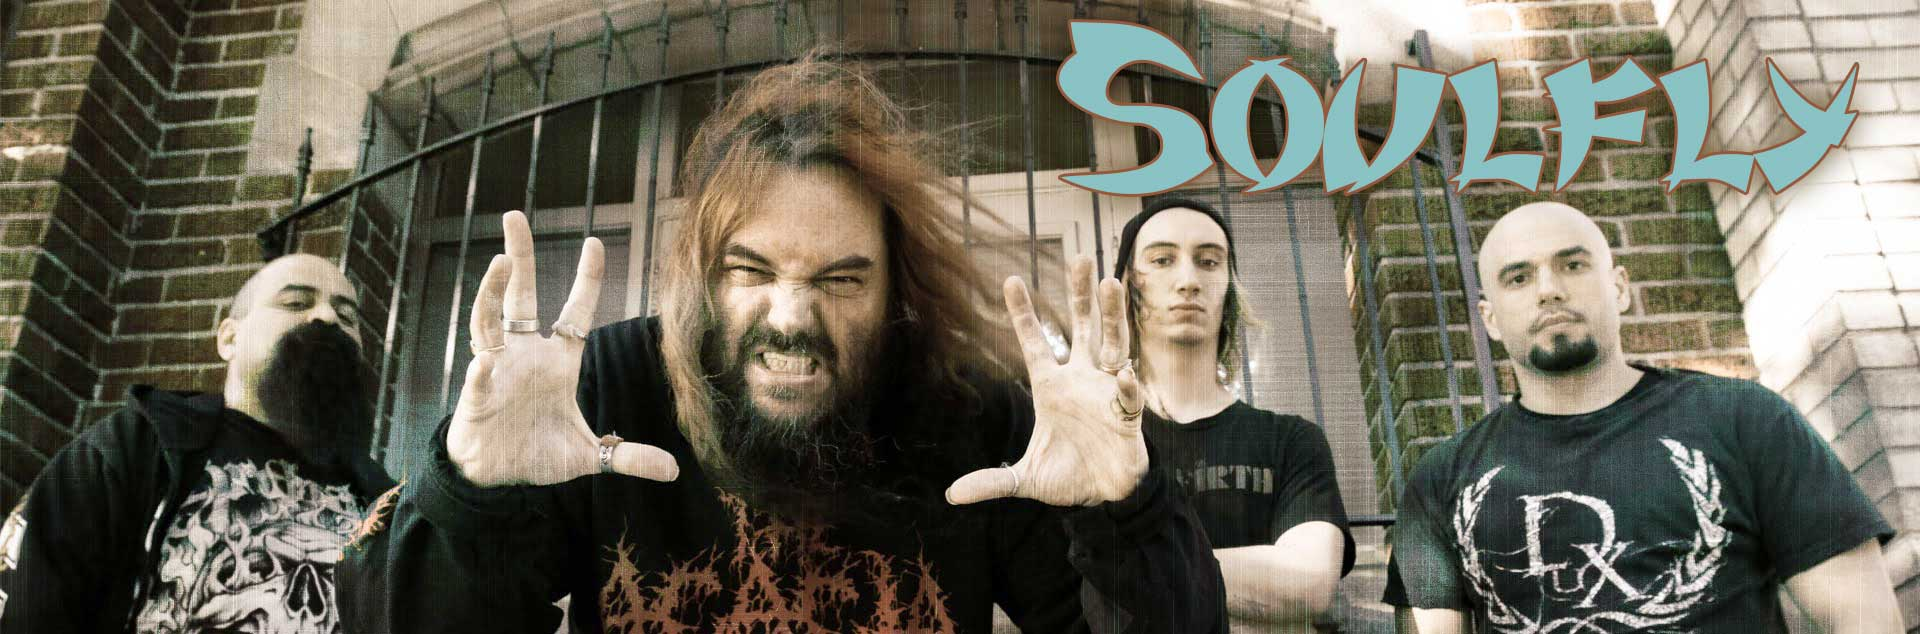 soulfly-slide